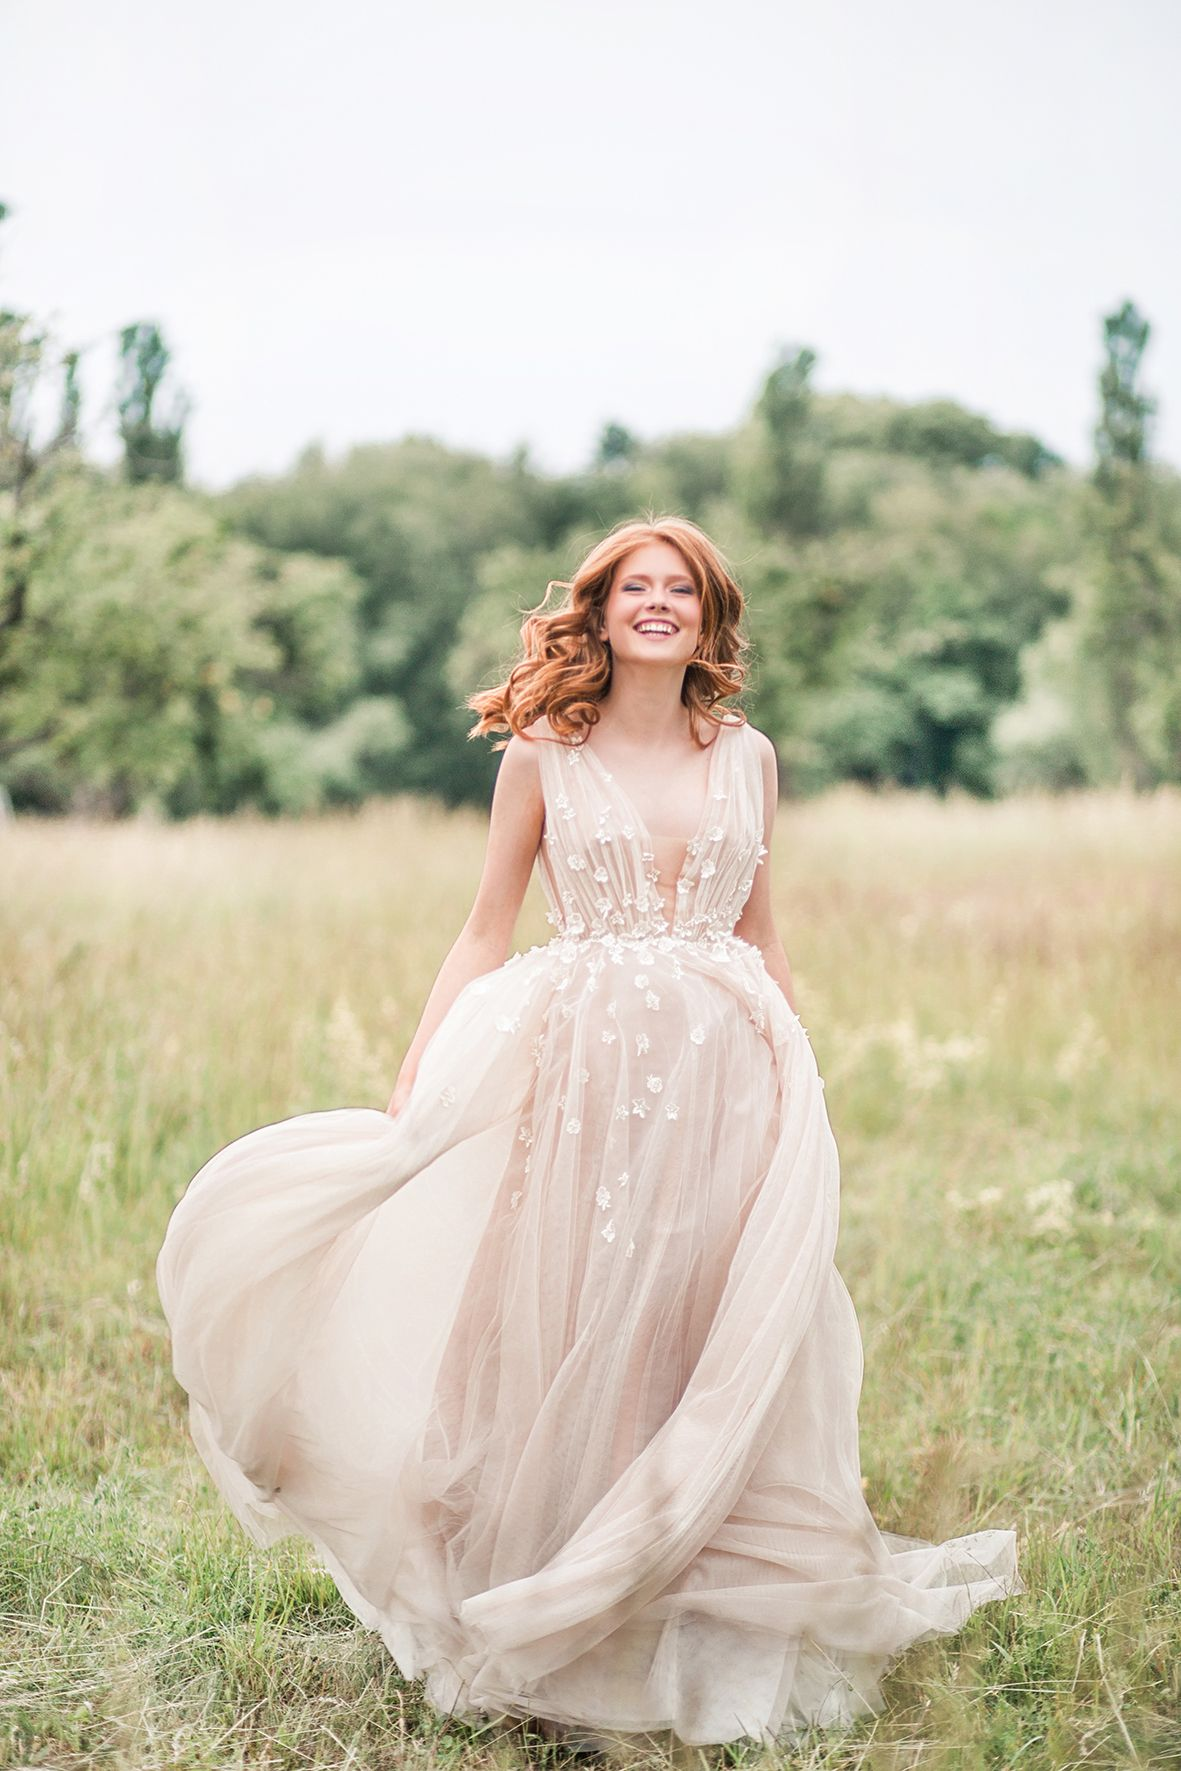 Wedding Dress Wedding Dress Designer Light And Airy Seattle